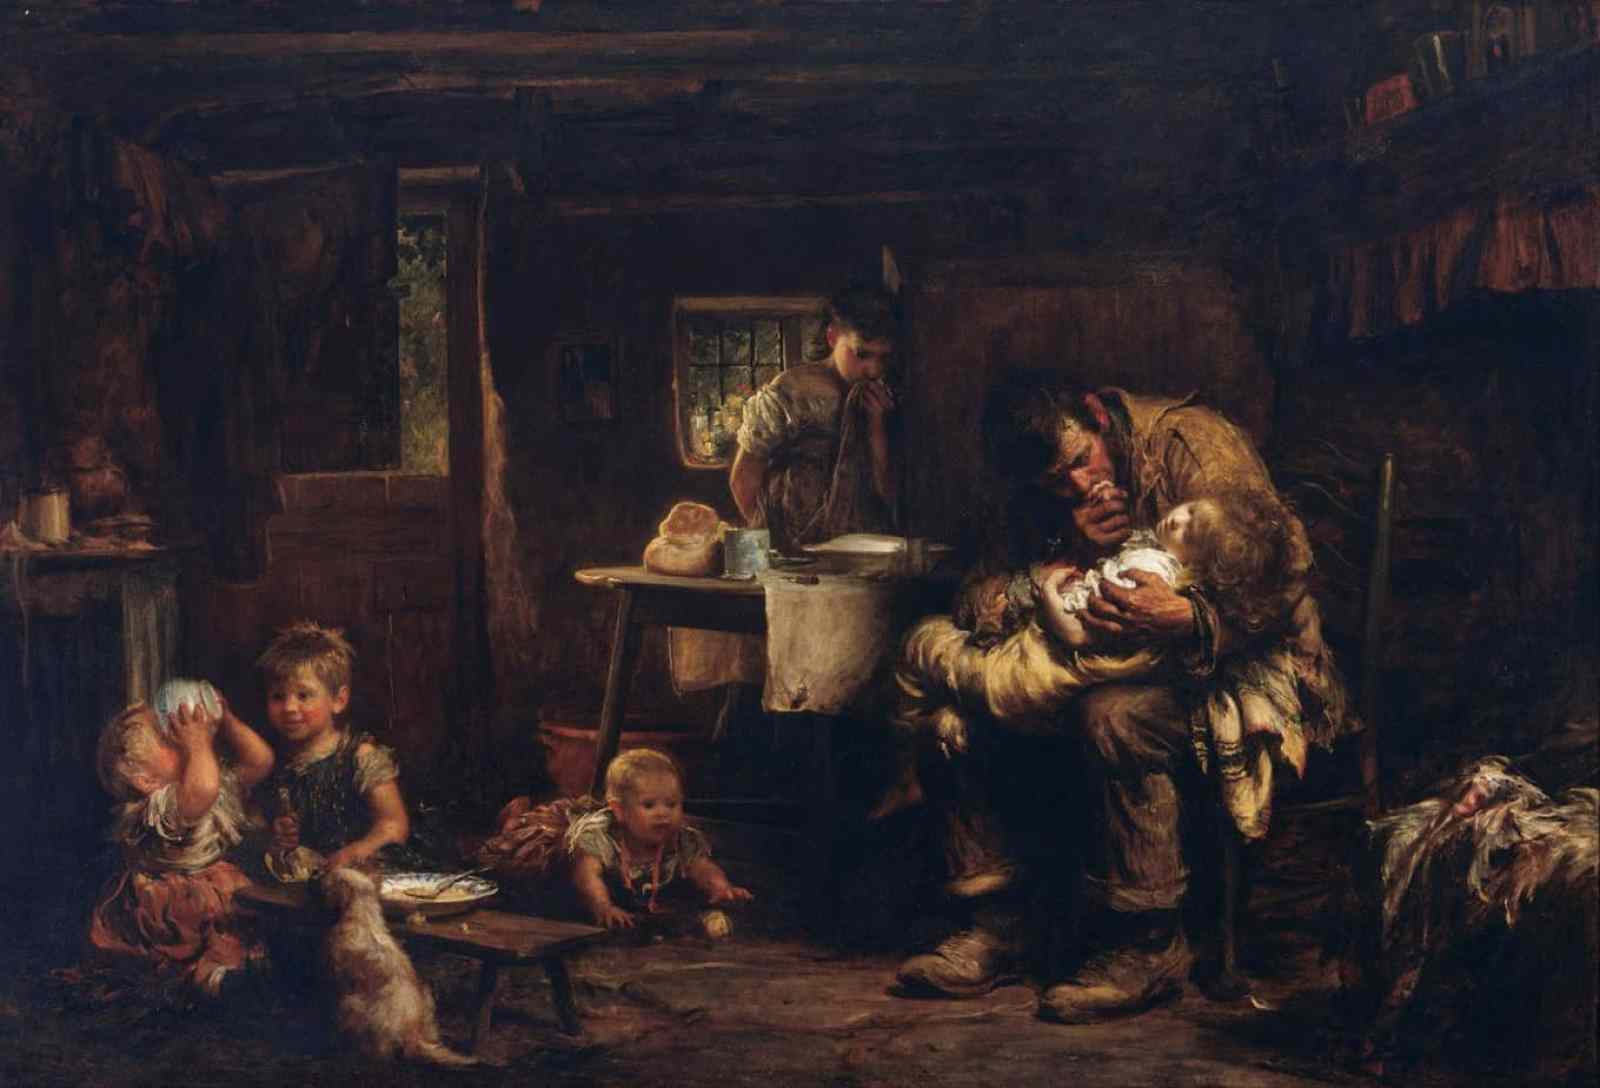 Sir Luke Fildes - The Widower 1875-76